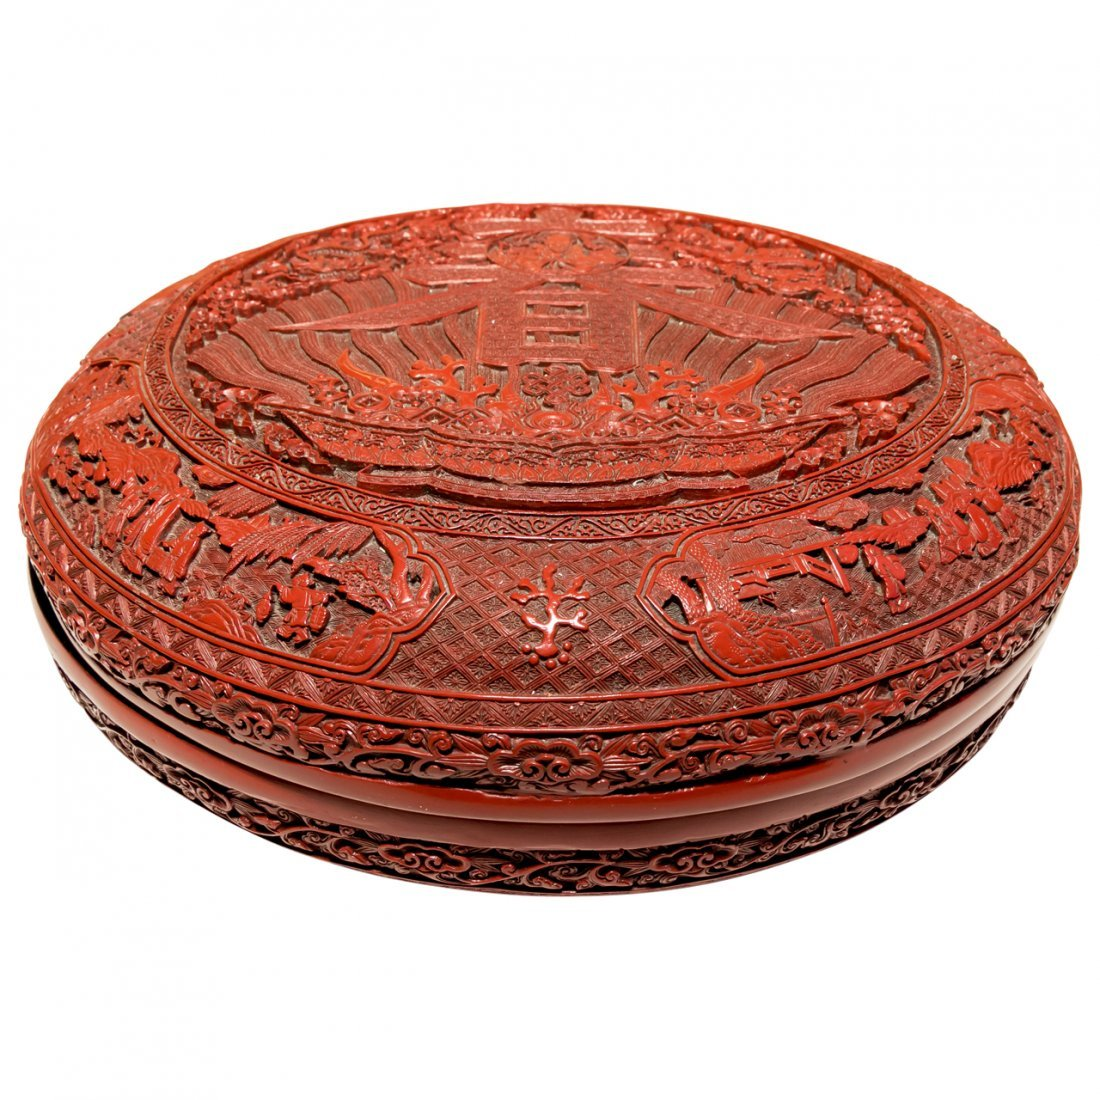 Massive Chinese Antique Cinnabar Wedding Box - 2